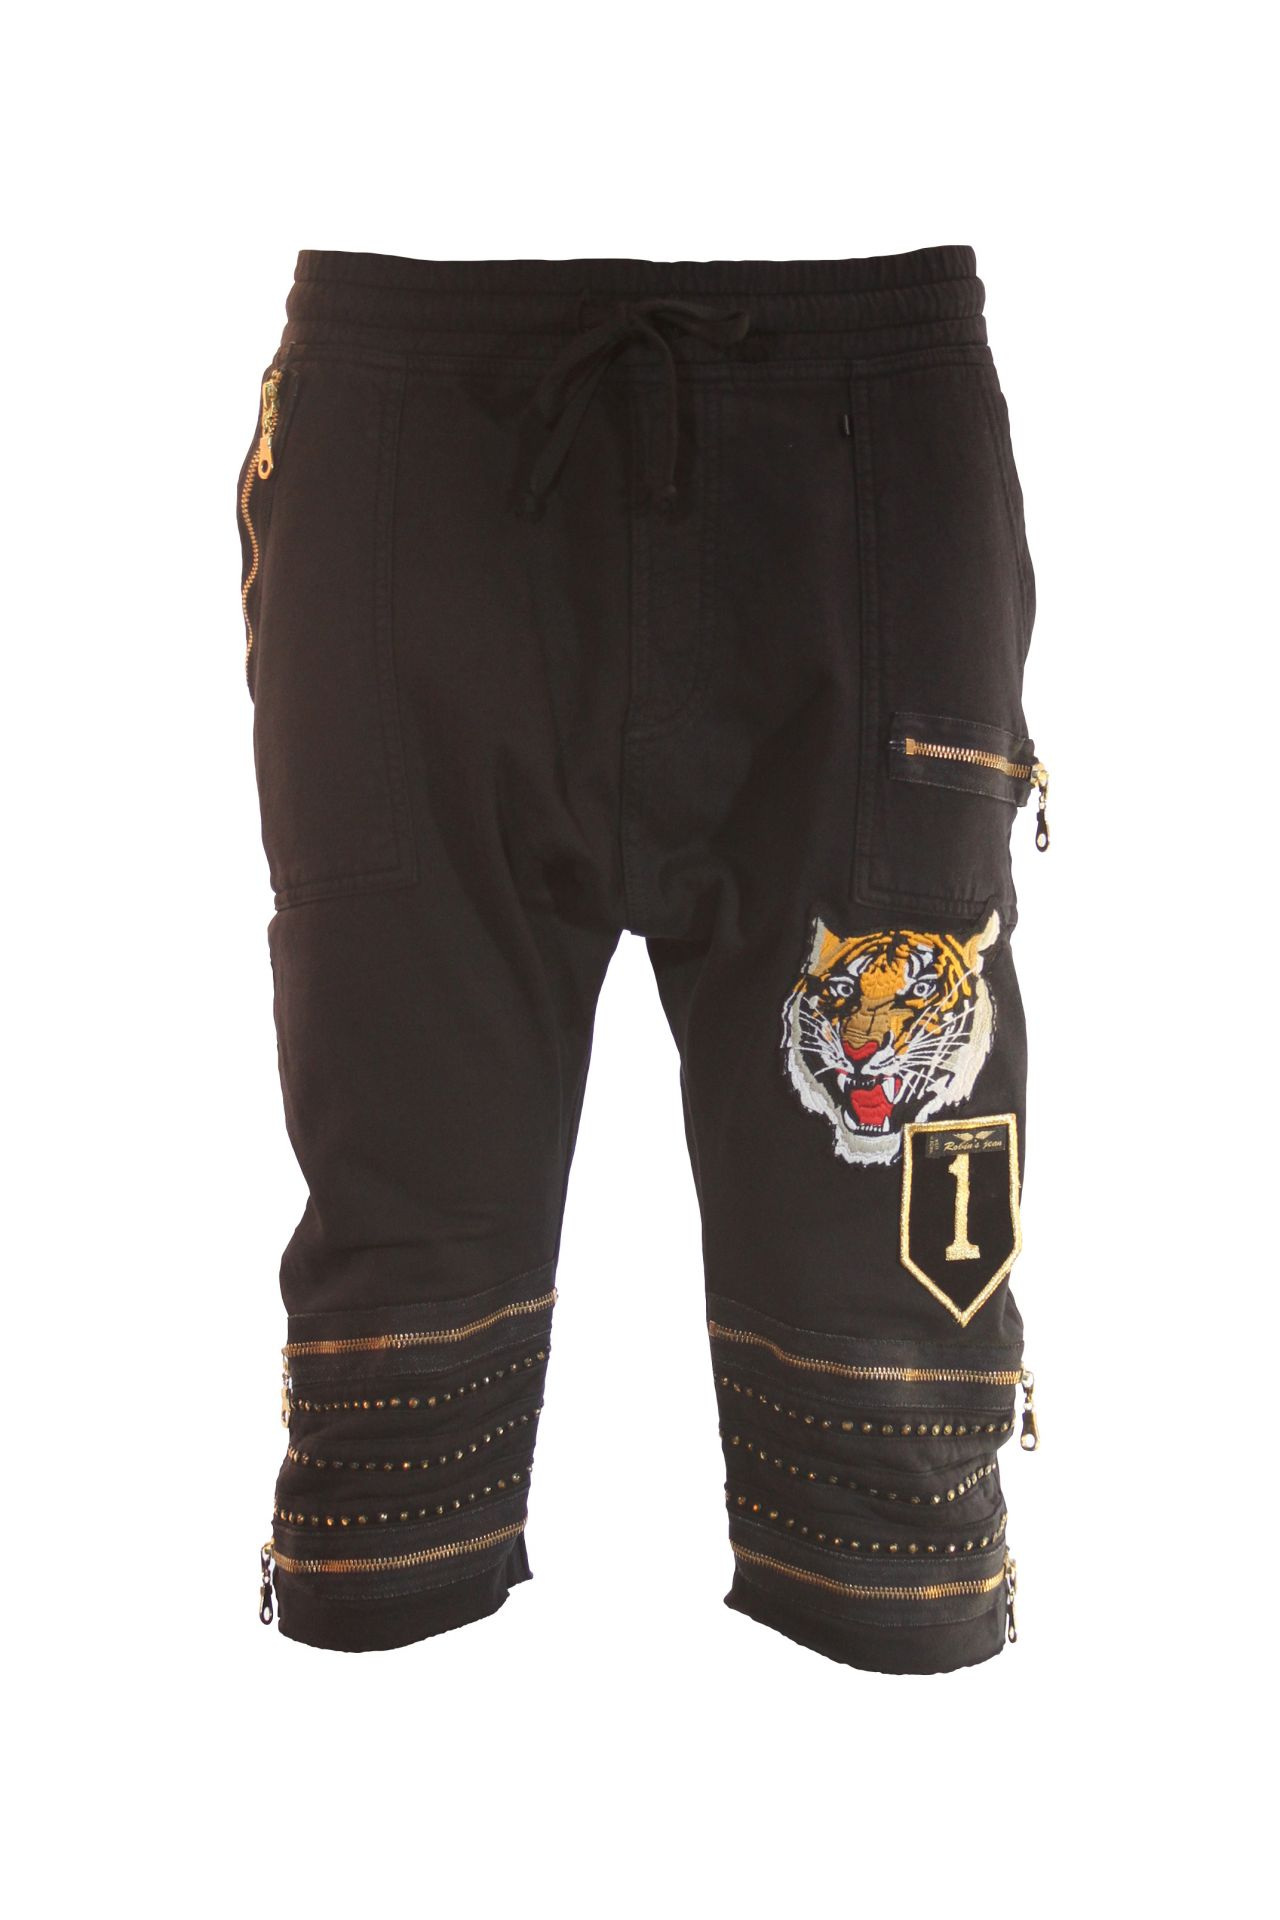 TIGER PATCH SHORT IN BLACK